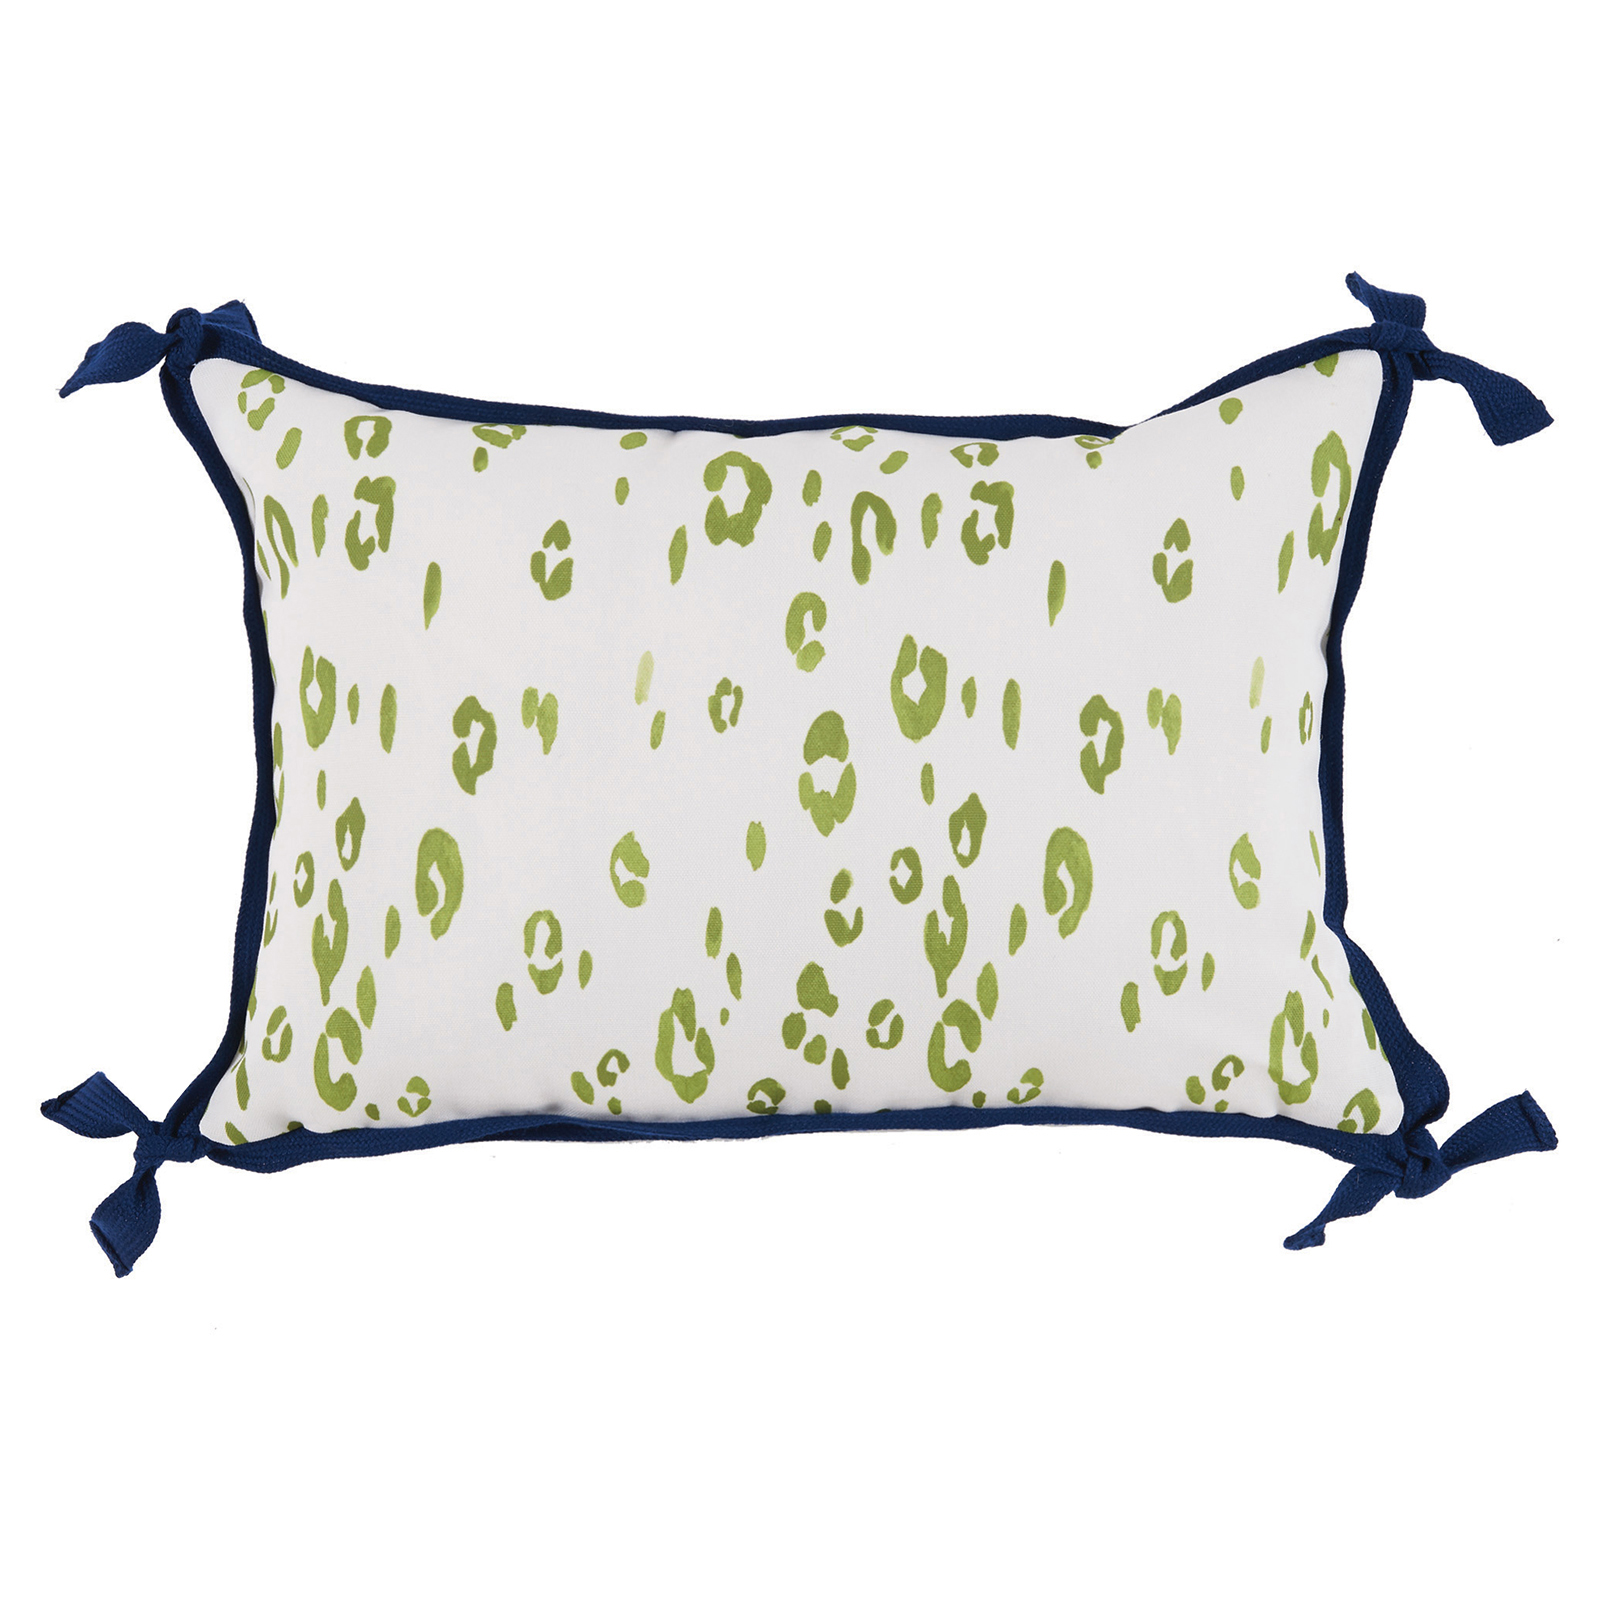 Hildy Modern Green Leopard Tie Outdoor Pillow - 13x19